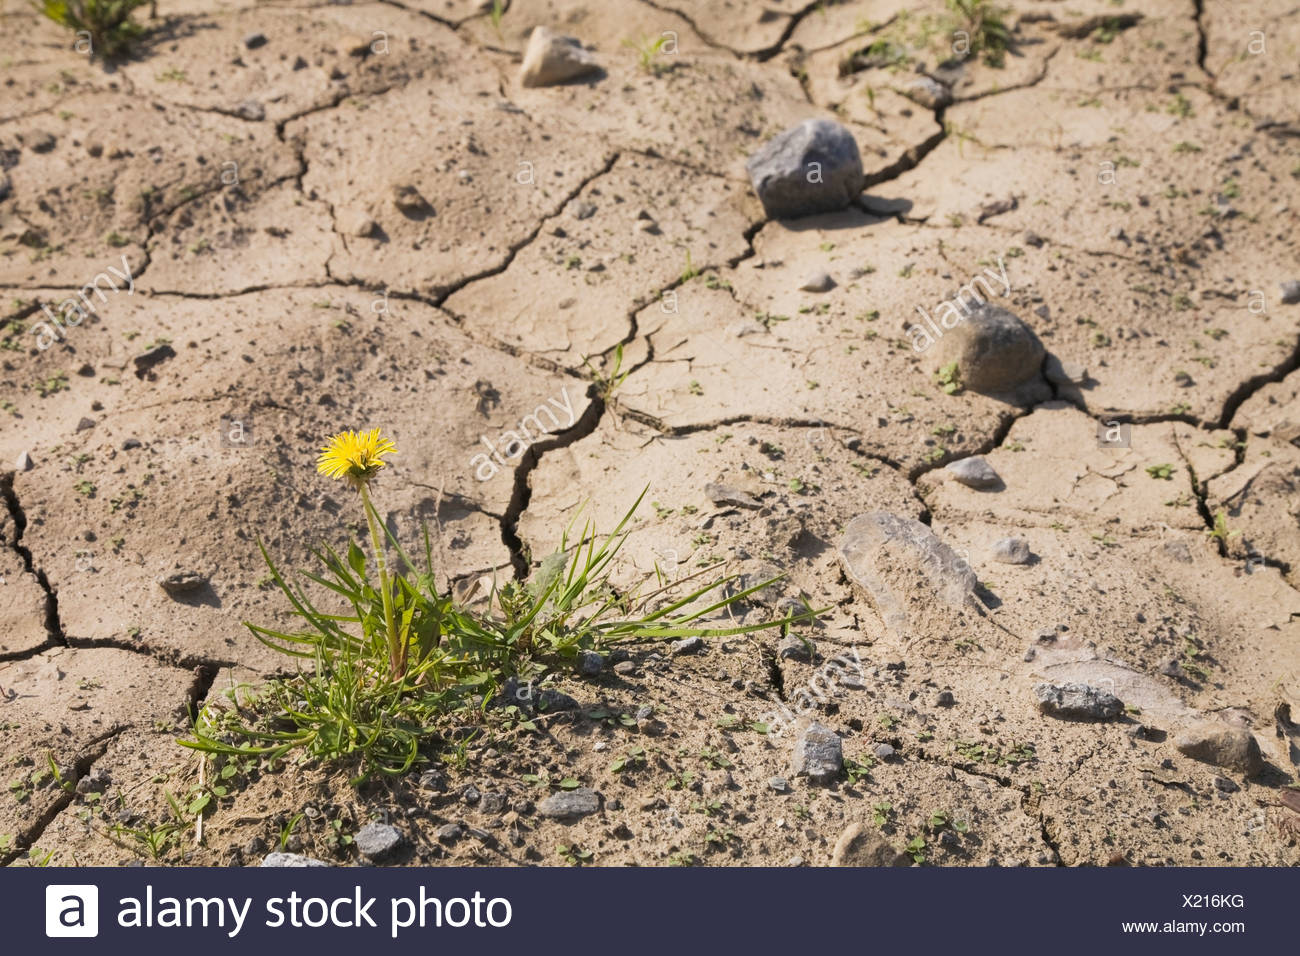 Yellow Dandelion Flower Growing In A Parched Agricultural Field At Springtime; Laval Quebec Canada Stock Photo